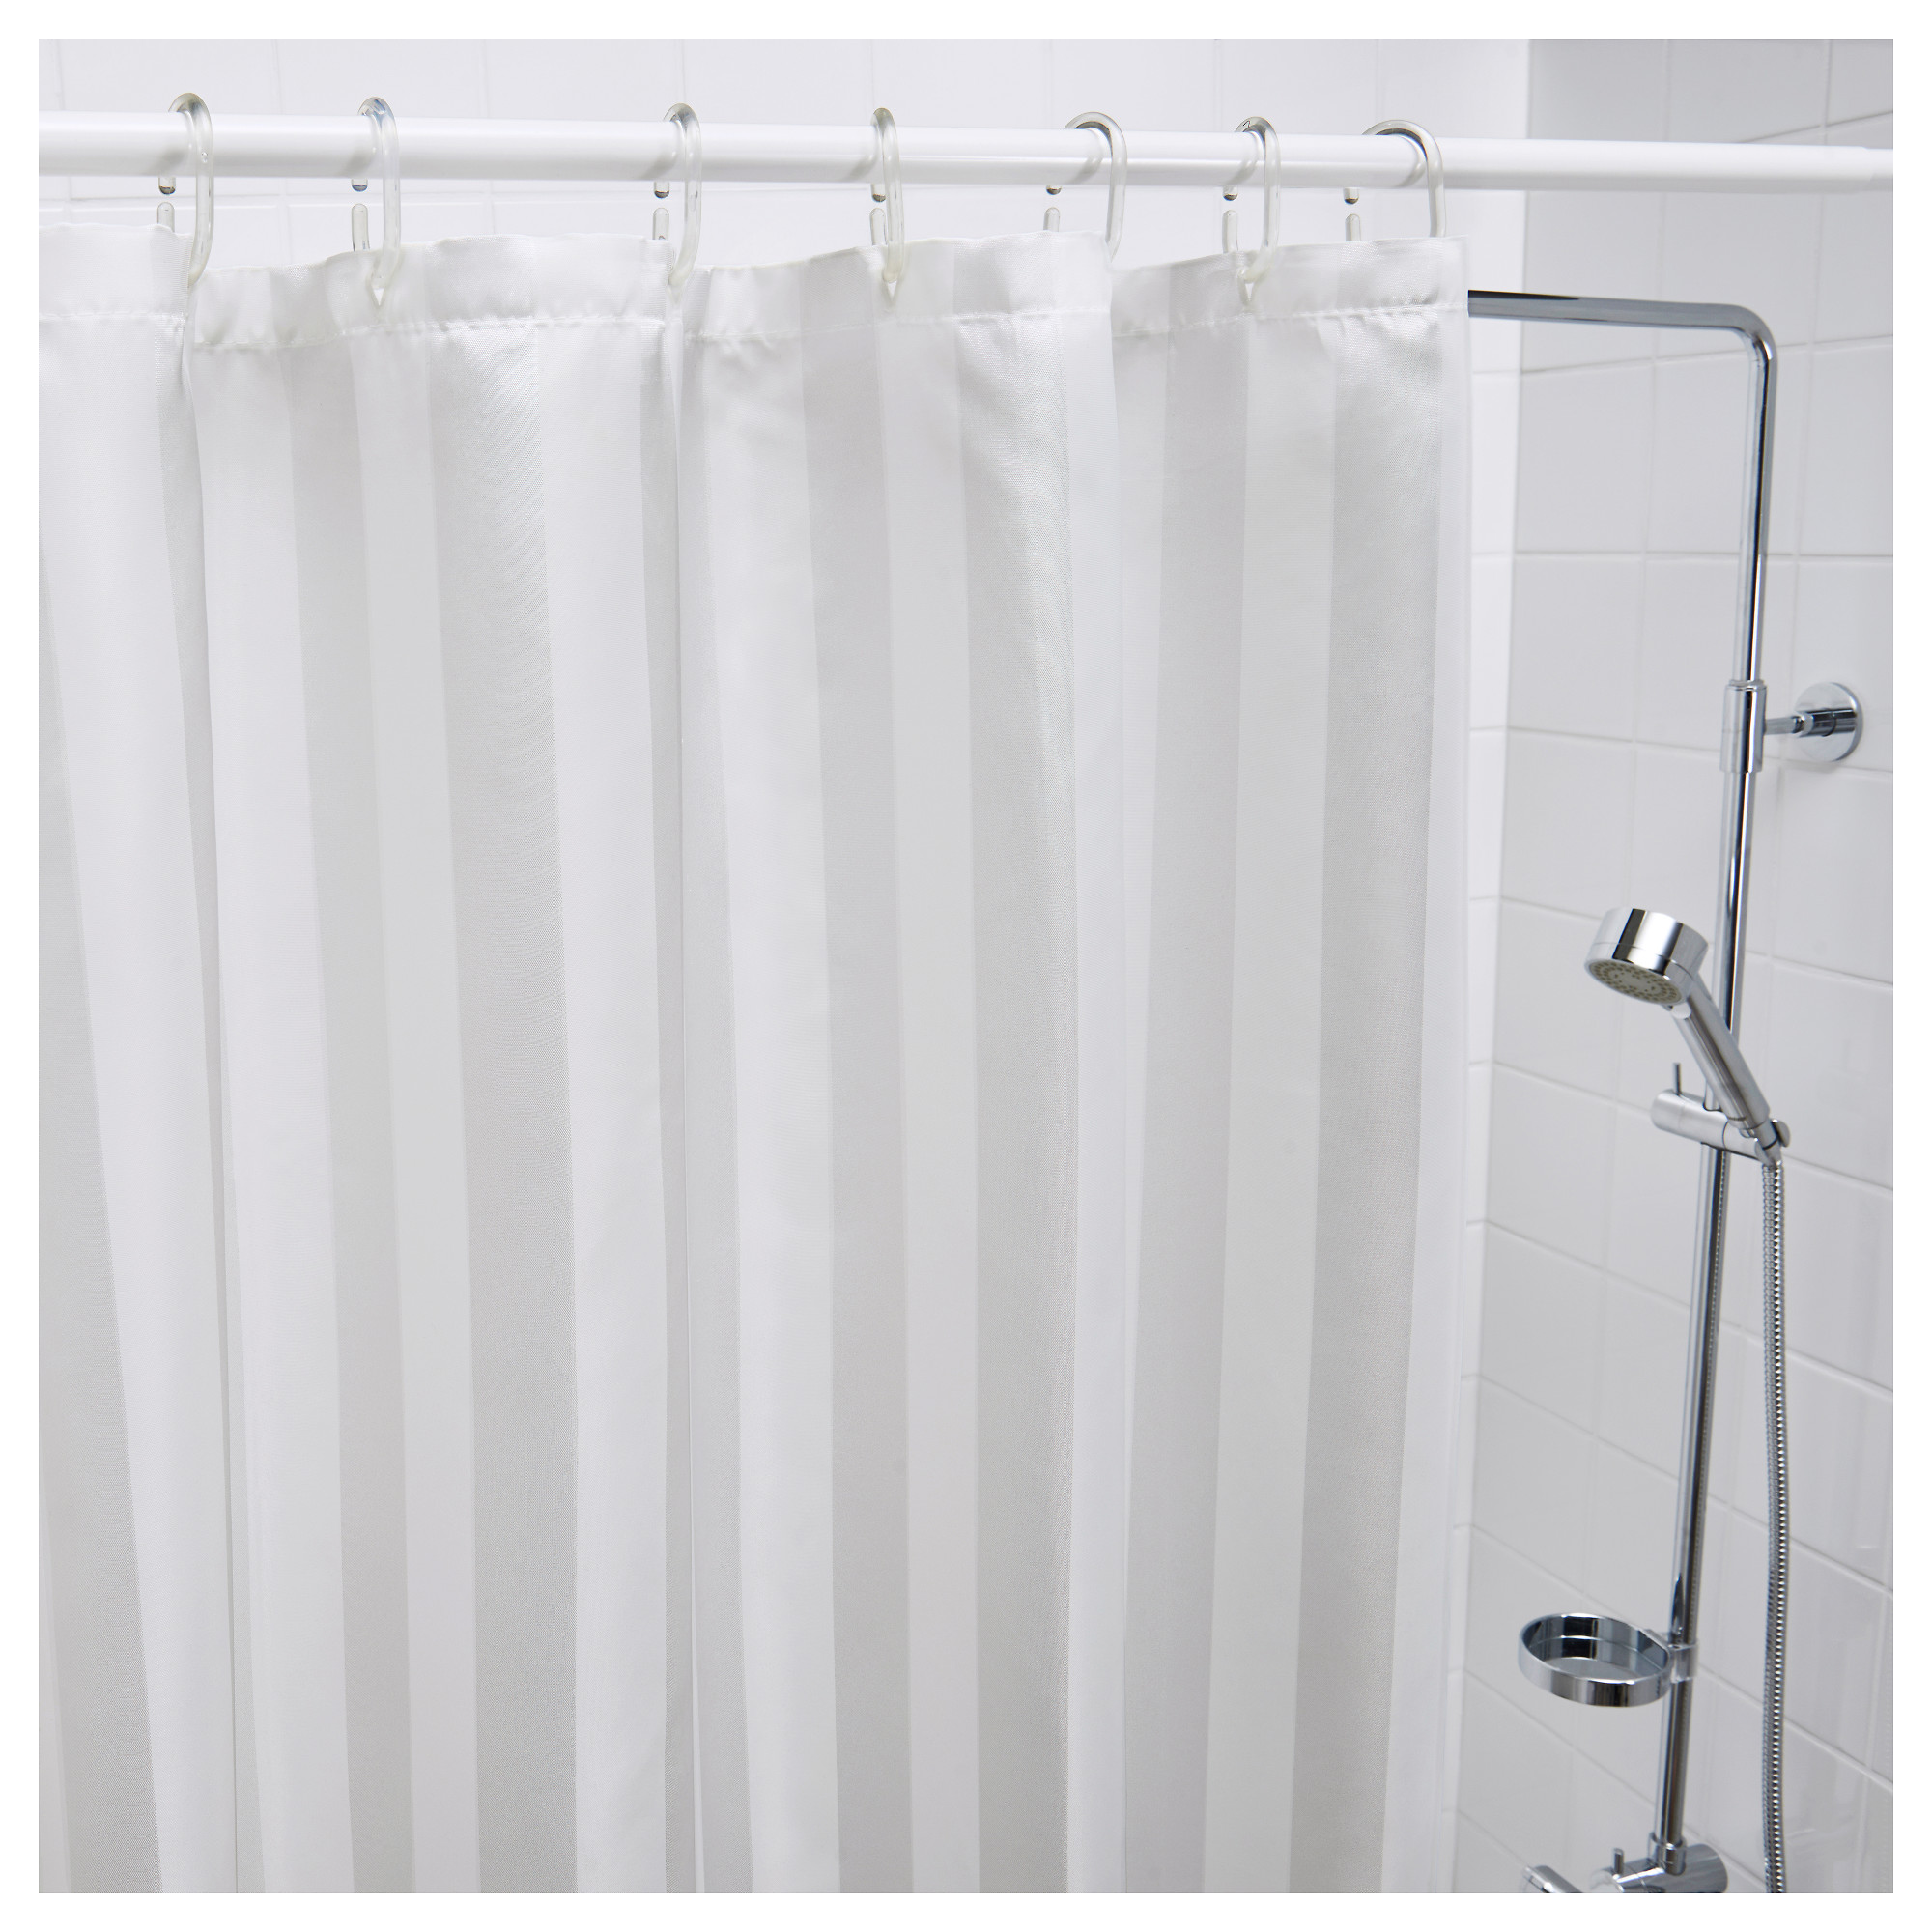 Fancy Shower Curtains | 84in Shower Curtain | Ikea Shower Curtain